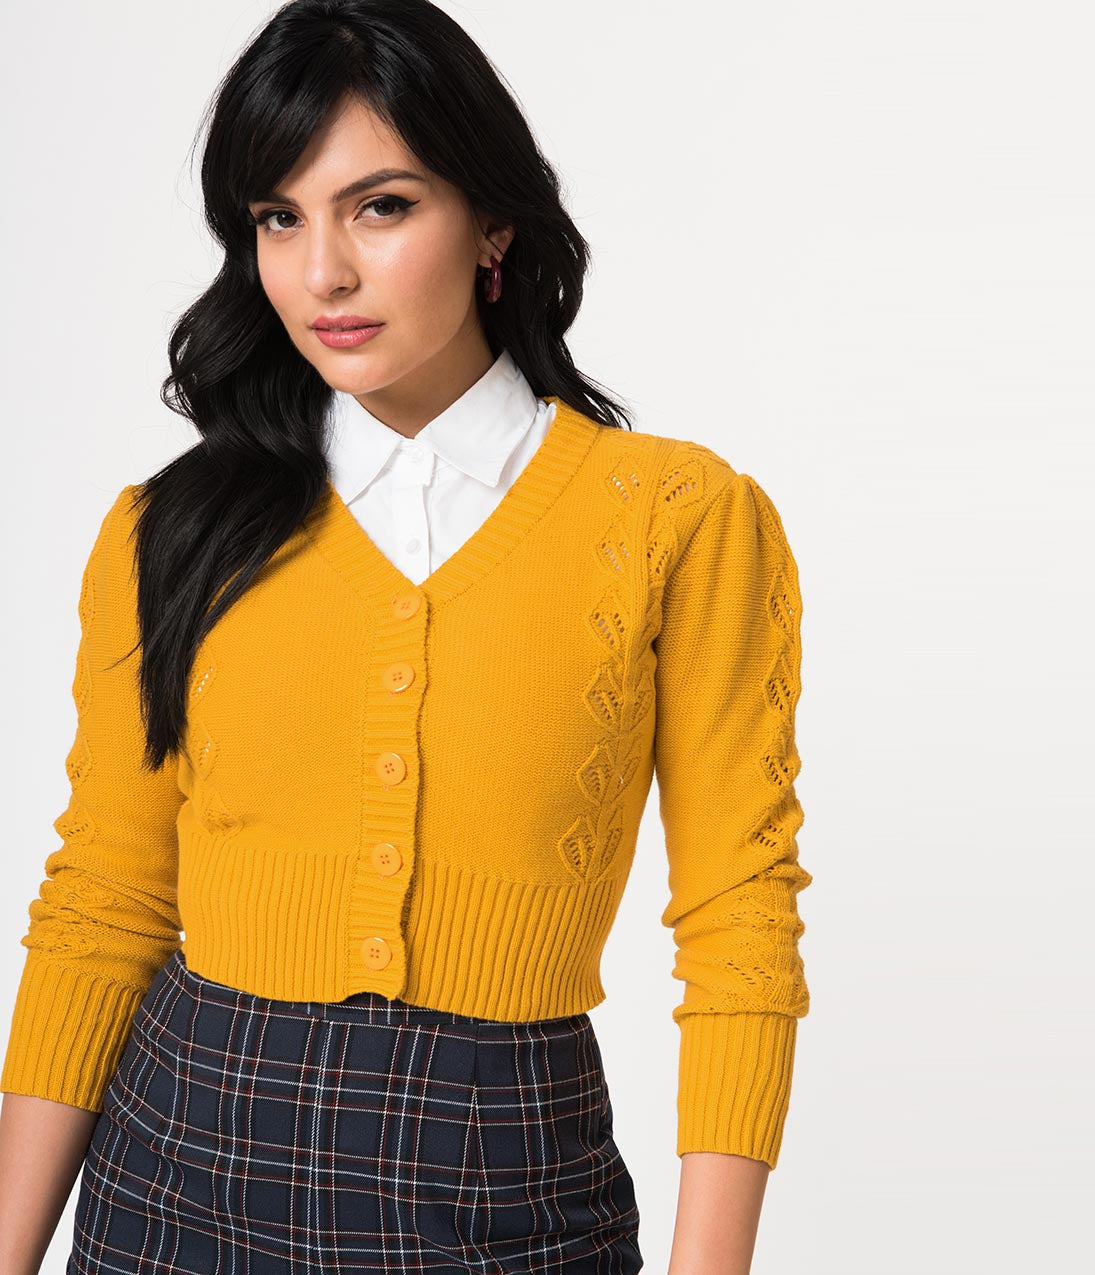 Vintage Sweaters: Cable Knit, Fair Isle Cardigans & Sweaters Voodoo Vixen 1940S Mustard Yellow Cotton Cable Knit Julia Crop Cardigan $58.00 AT vintagedancer.com